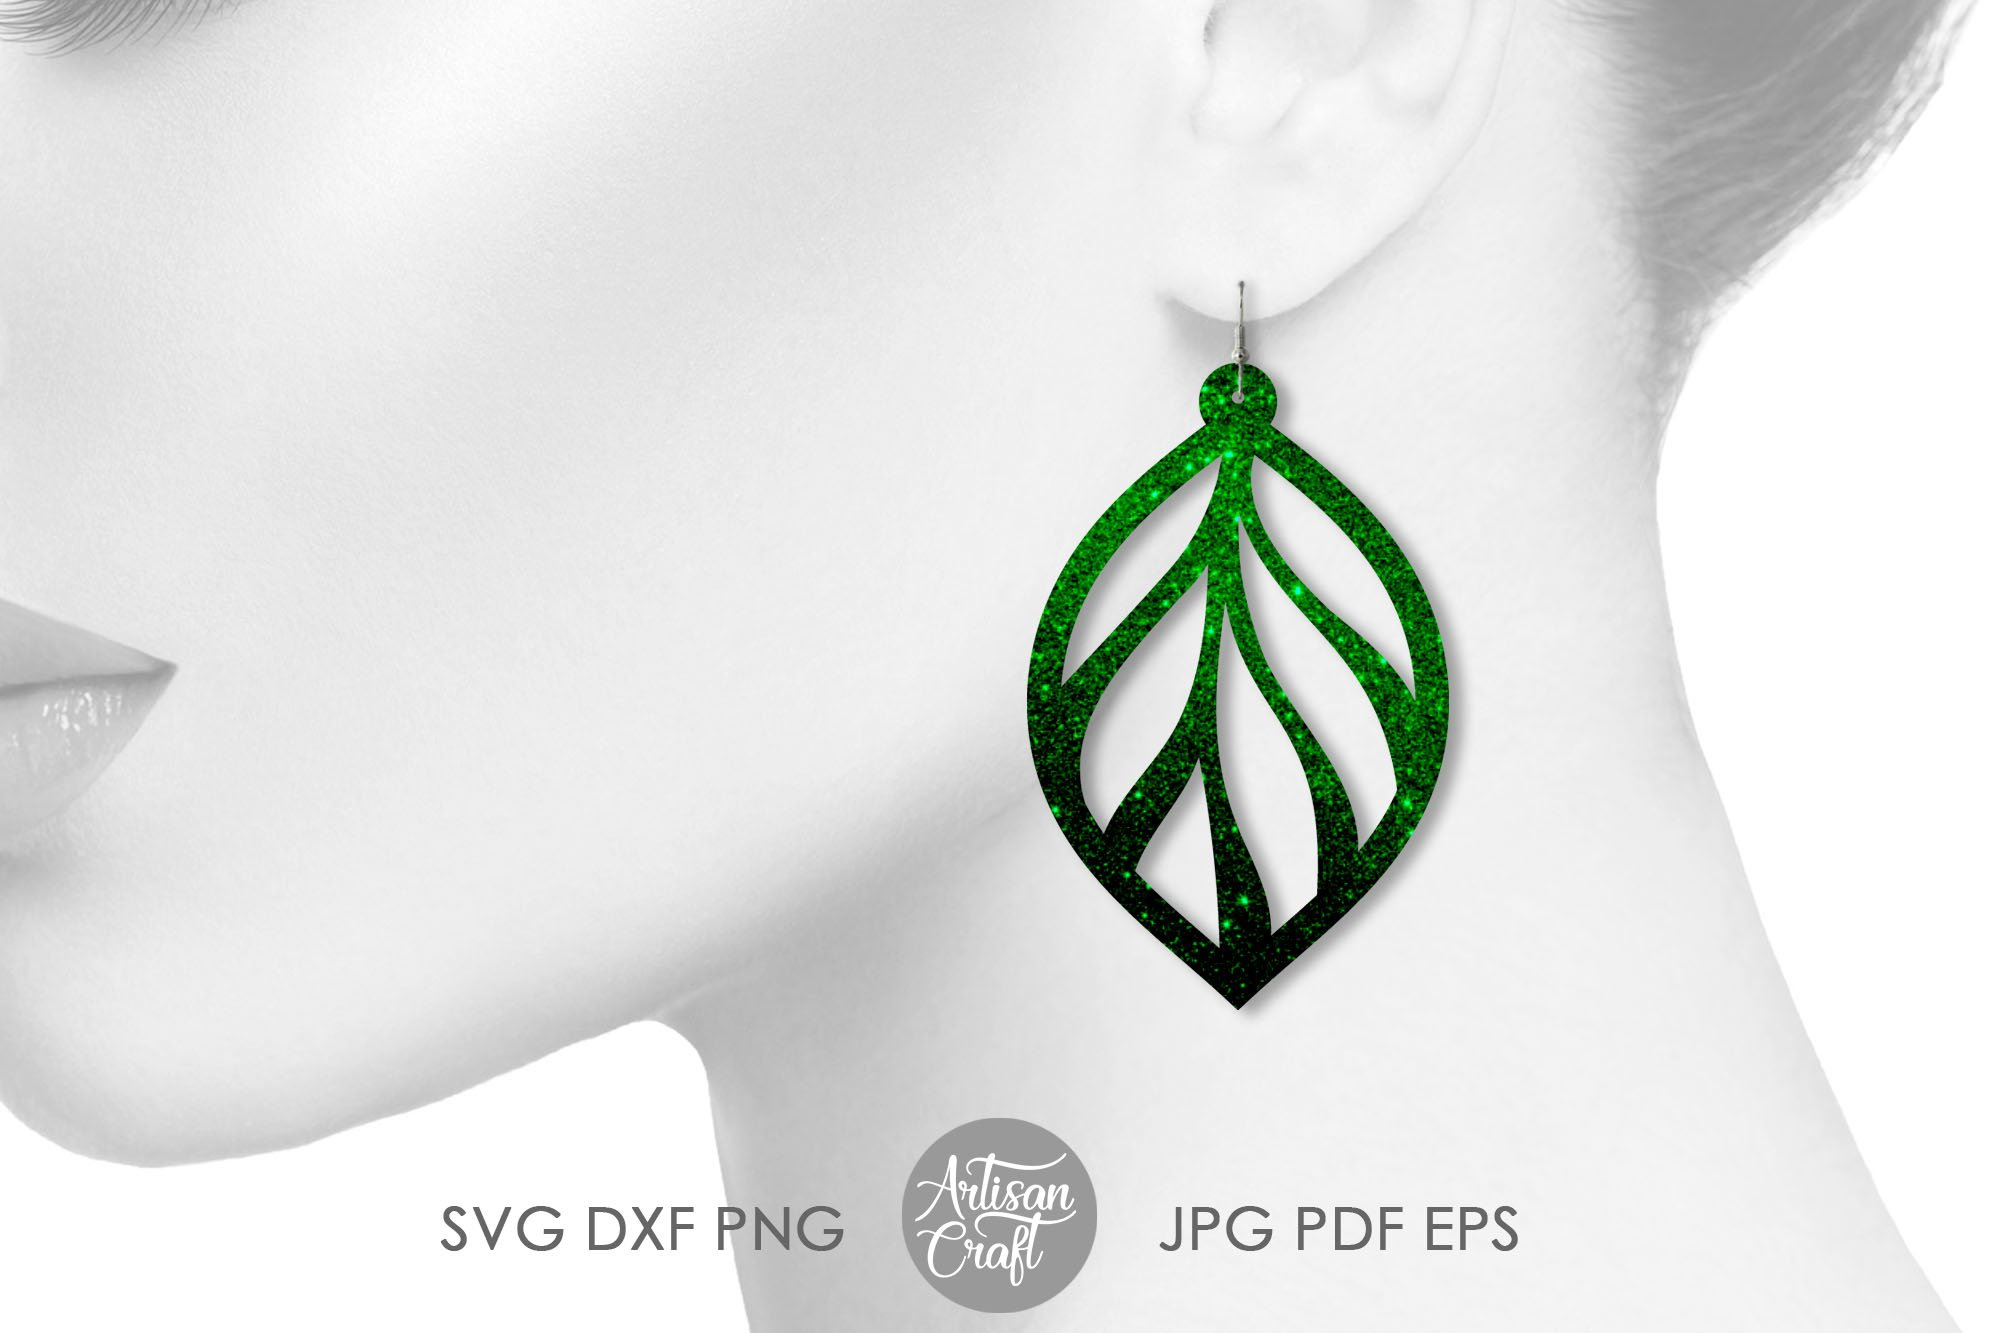 Leaf earring svg, faux leather earrings template example image 5